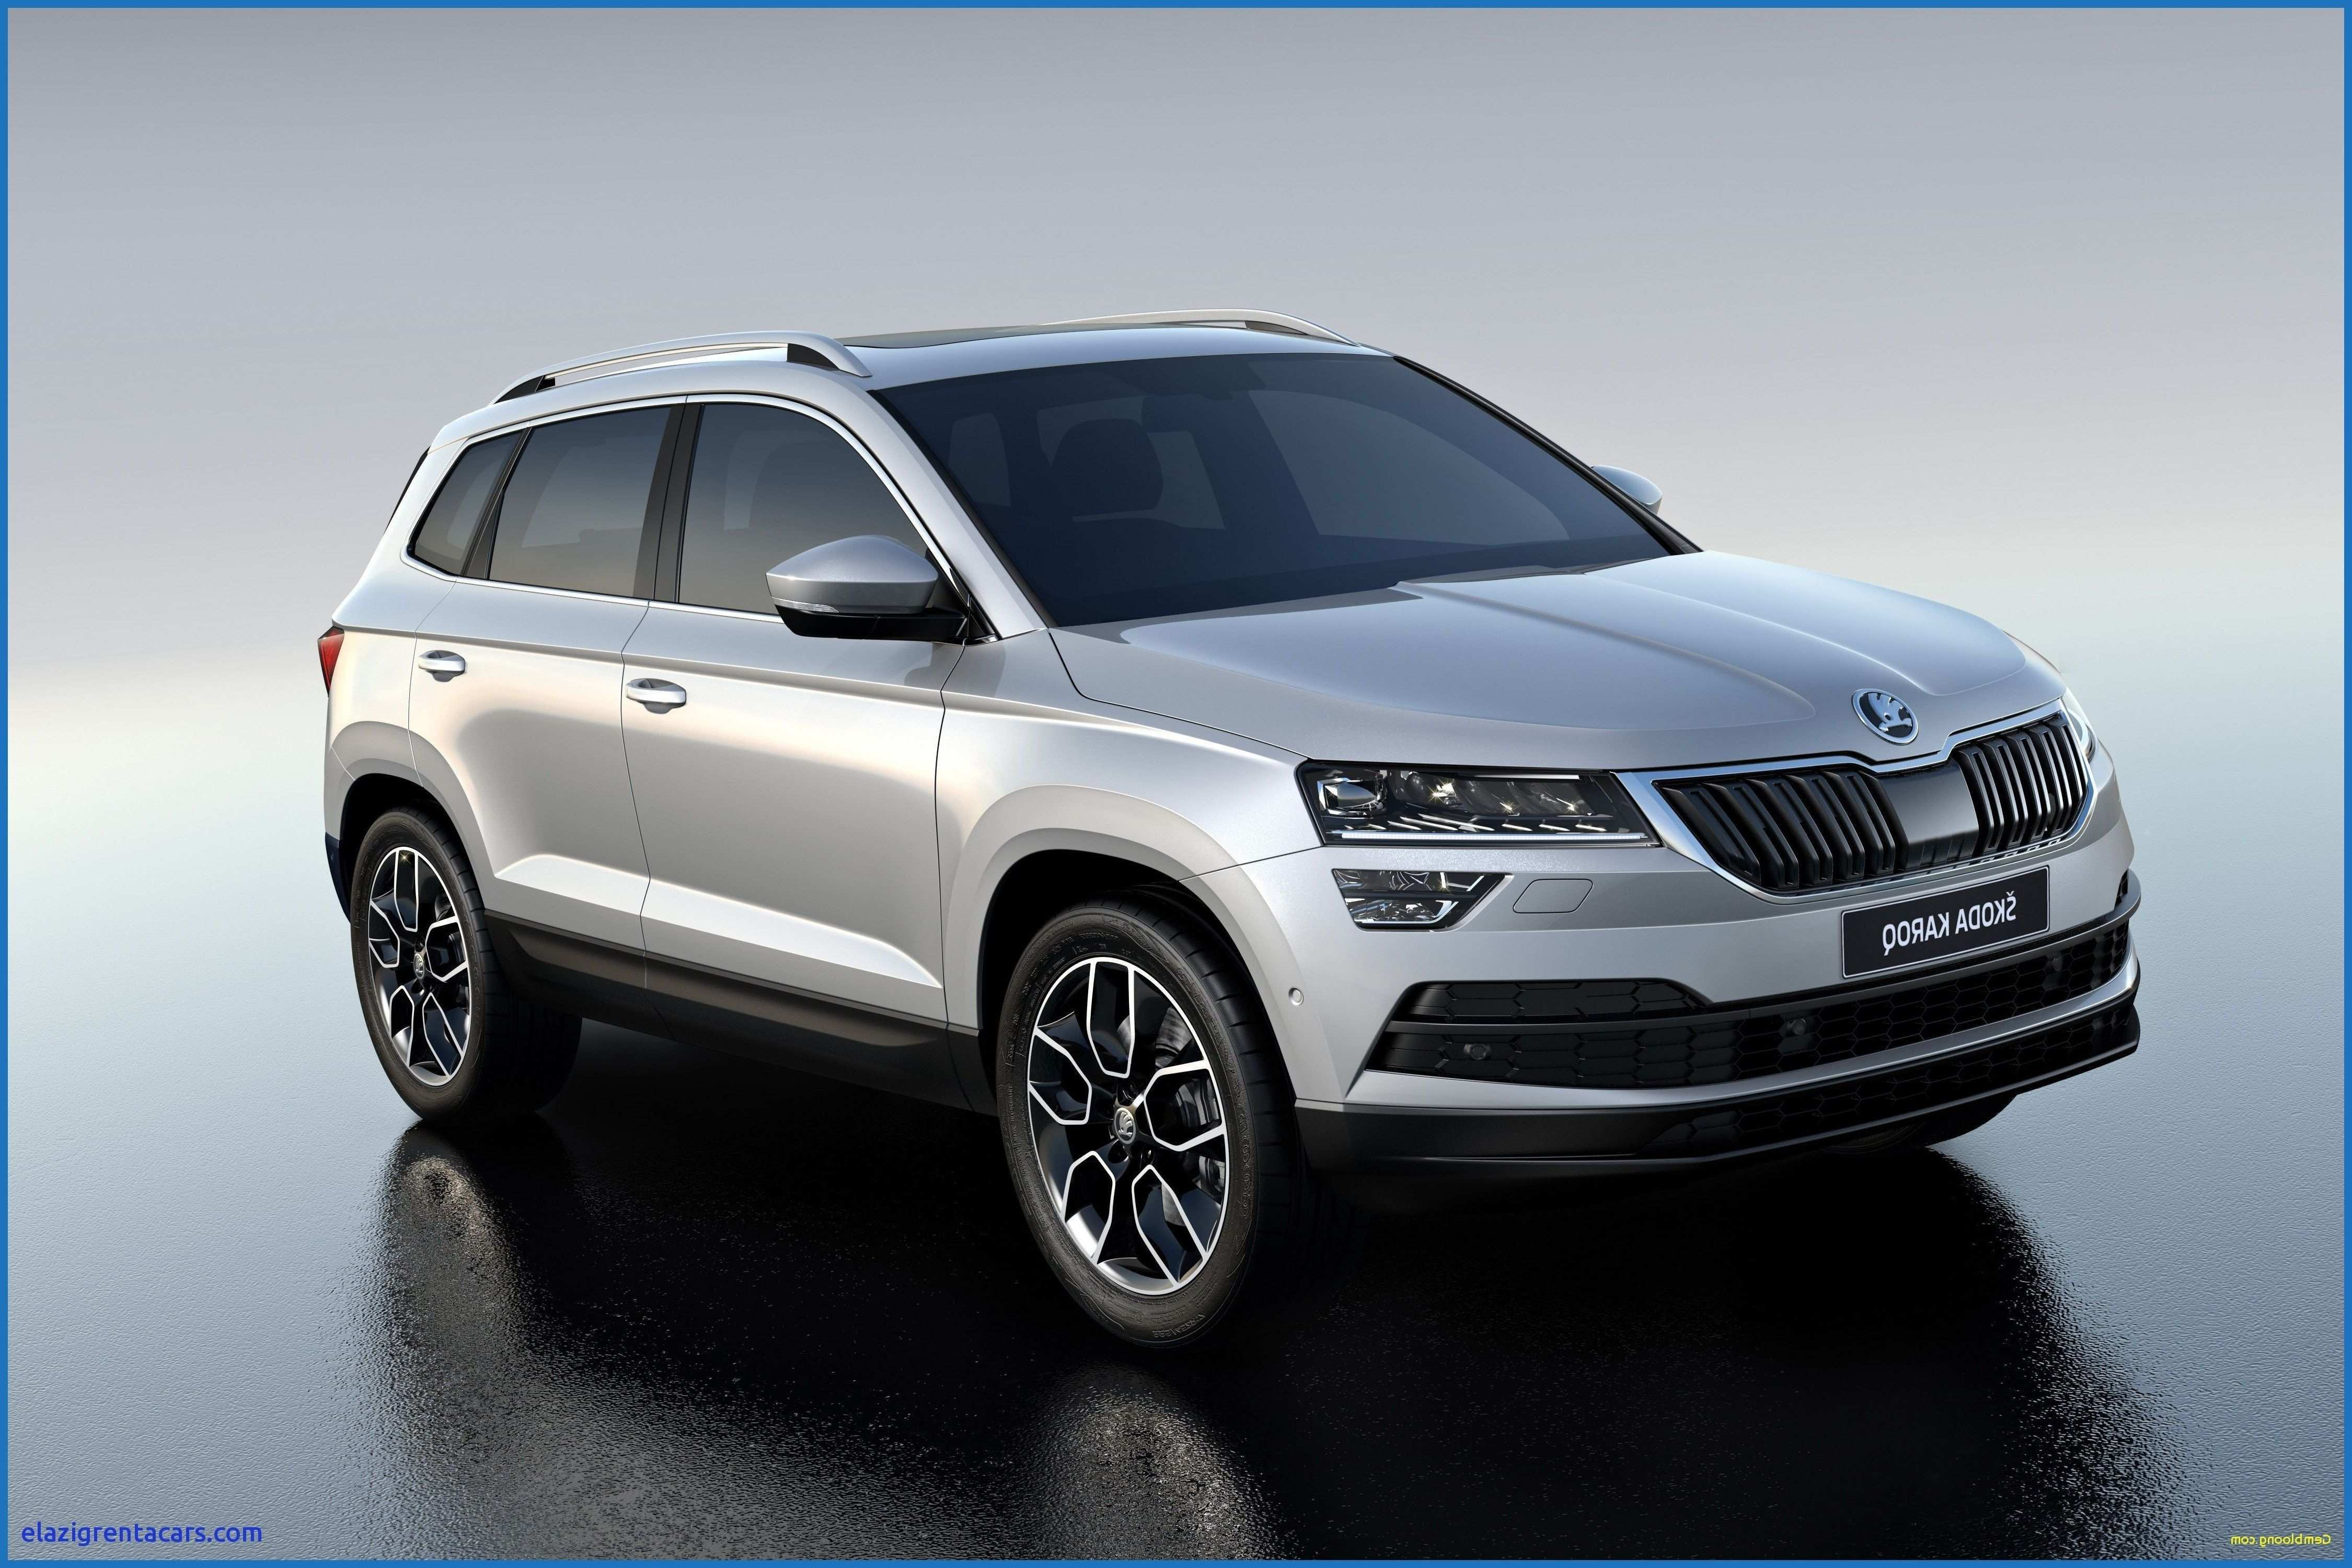 62 The 2020 Skoda Snowman Full Preview New Concept